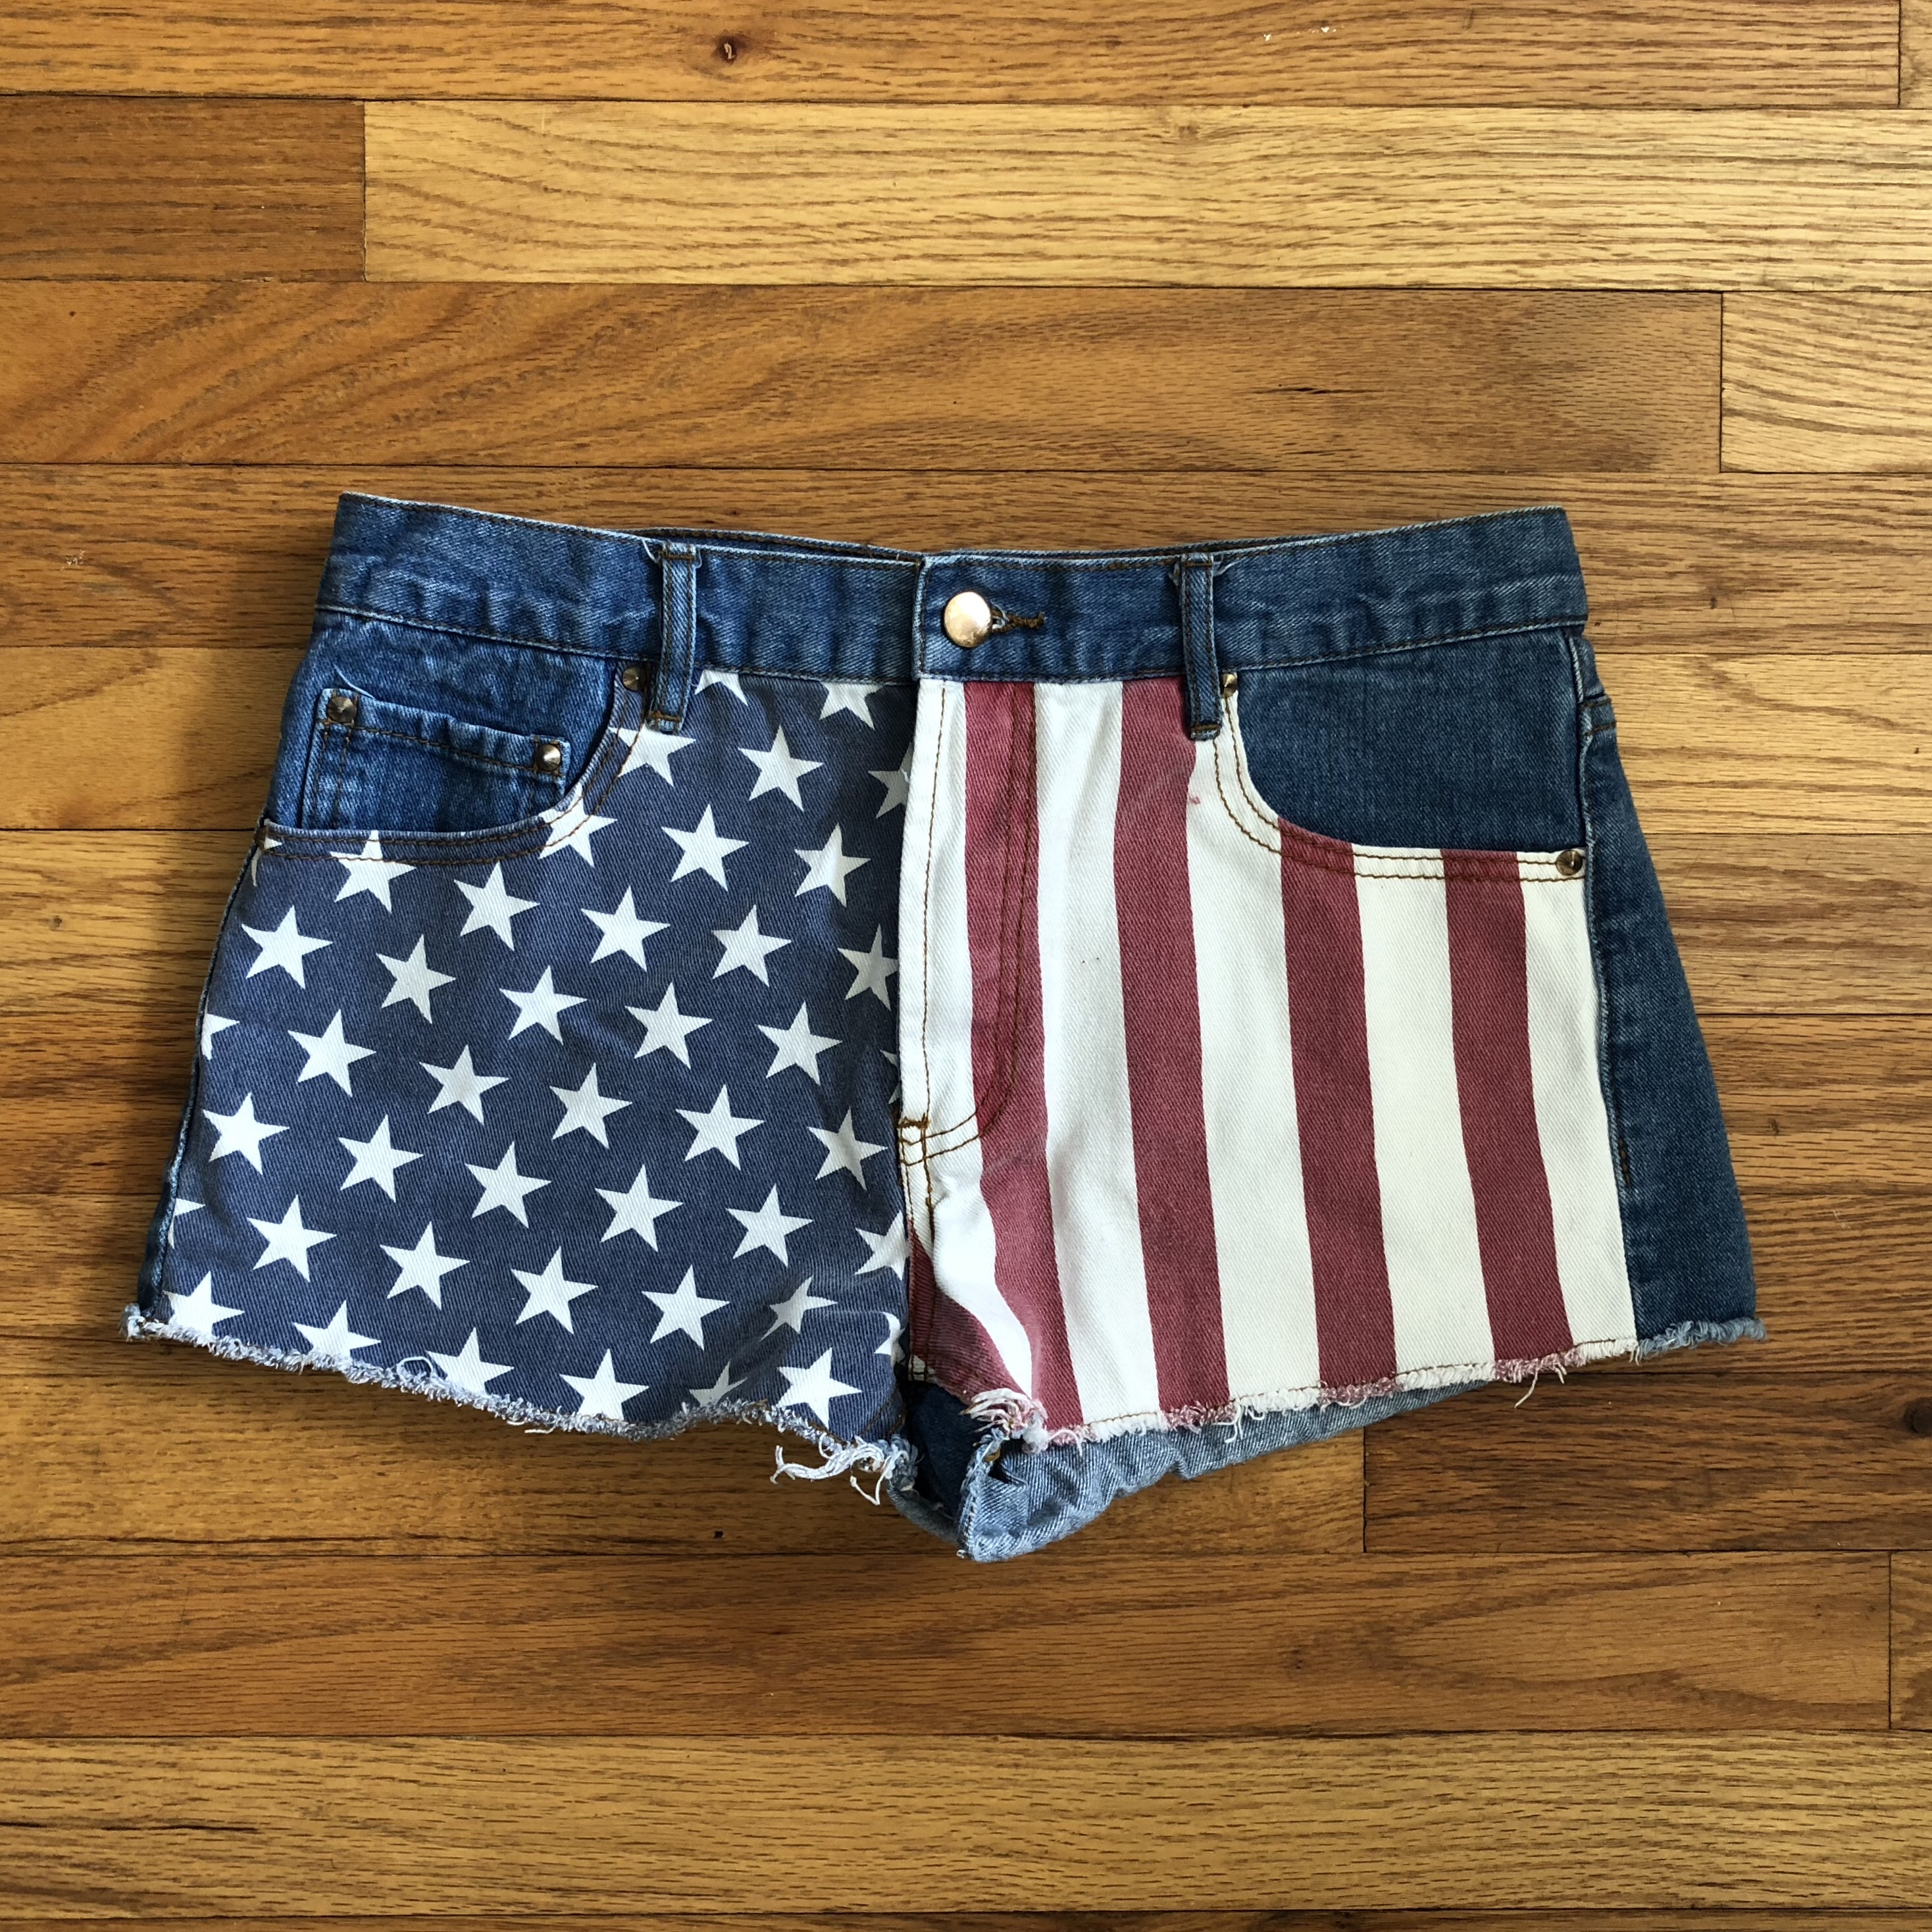 879caa09ab01 Patriotic jean shorts America flag design on front